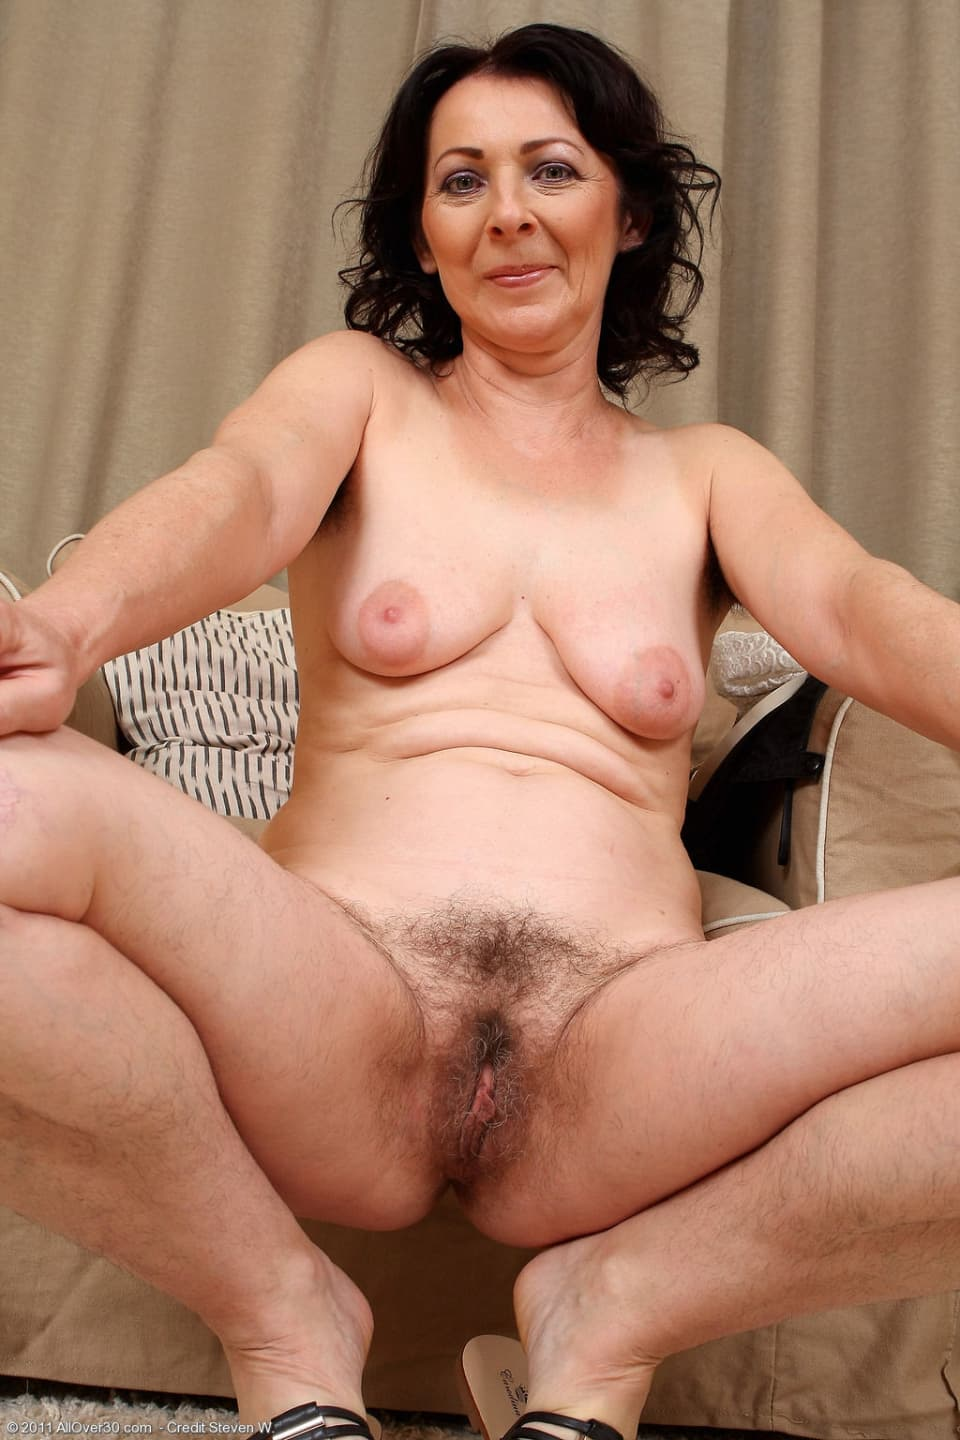 Rather good hot hairy naked woman opinion you